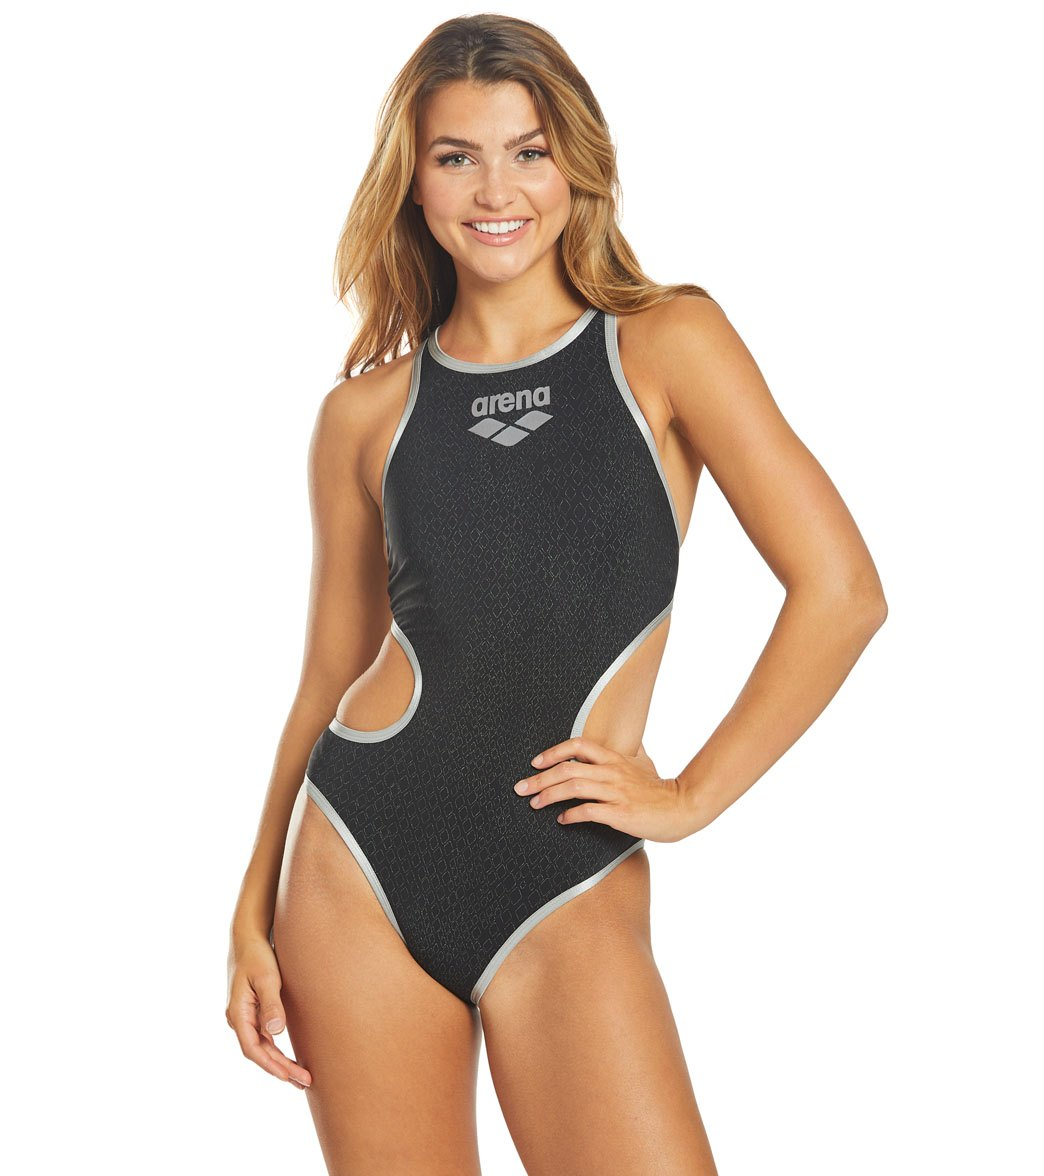 Arena Women's One Snake Piece Swimsuit